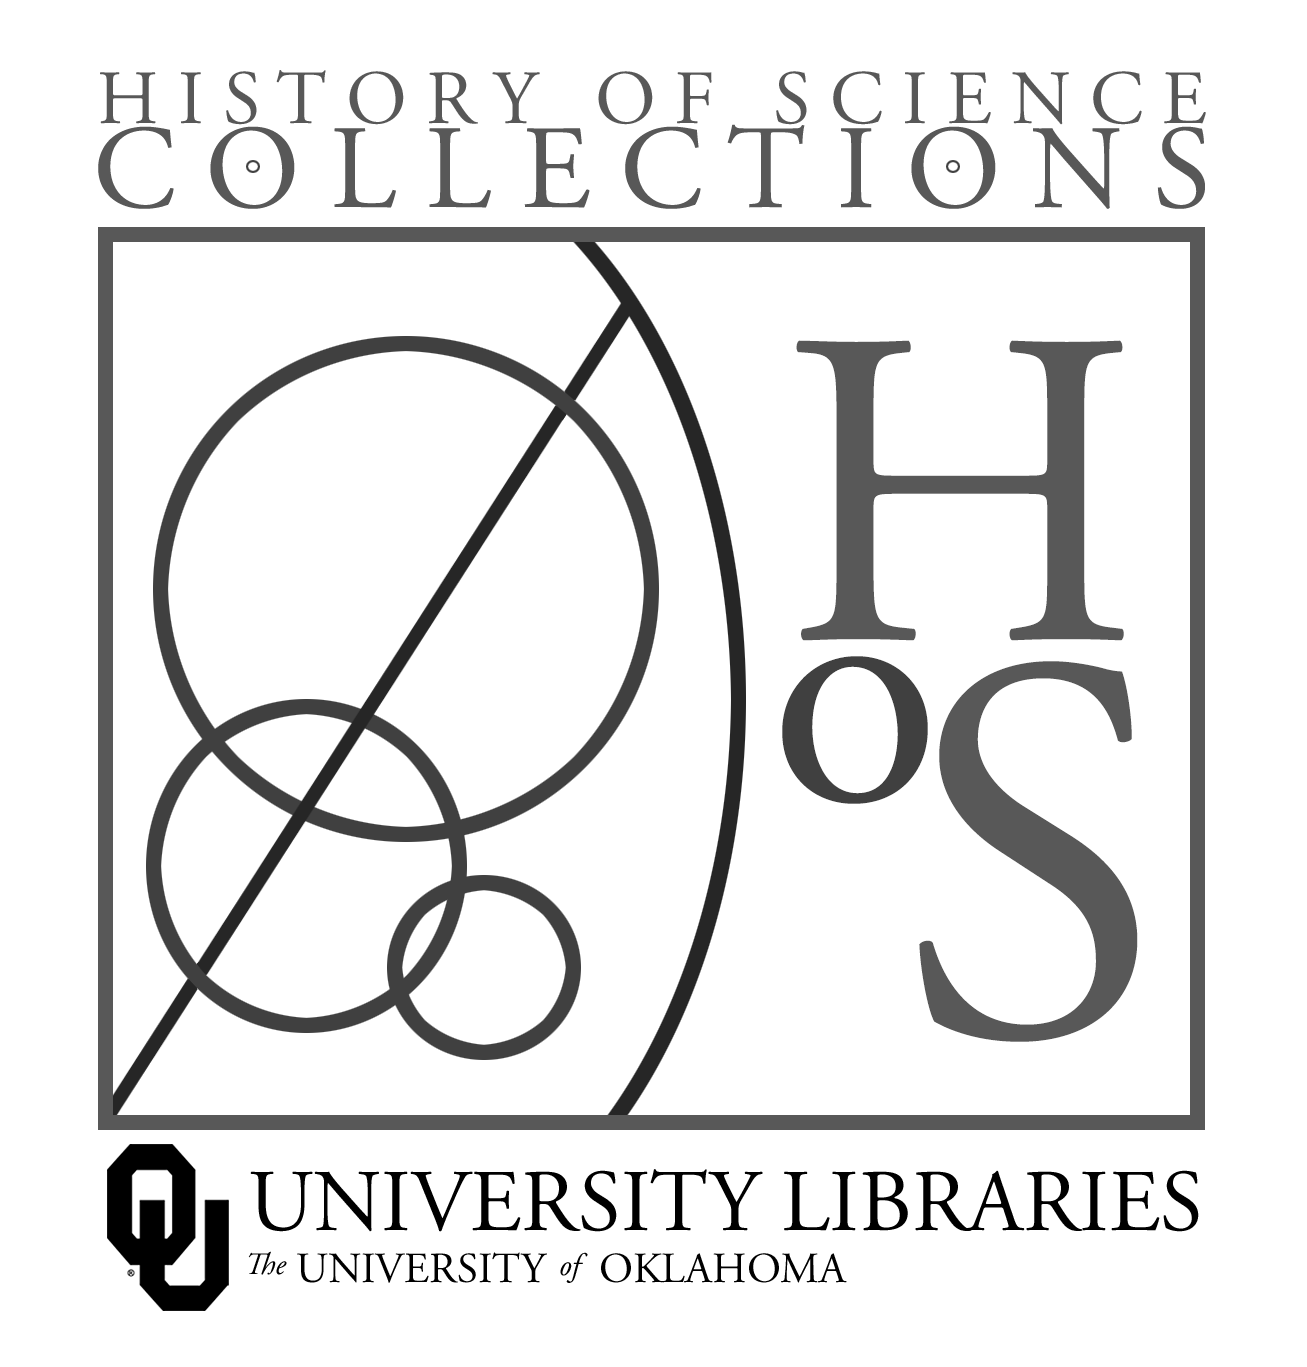 The History of Science Logo